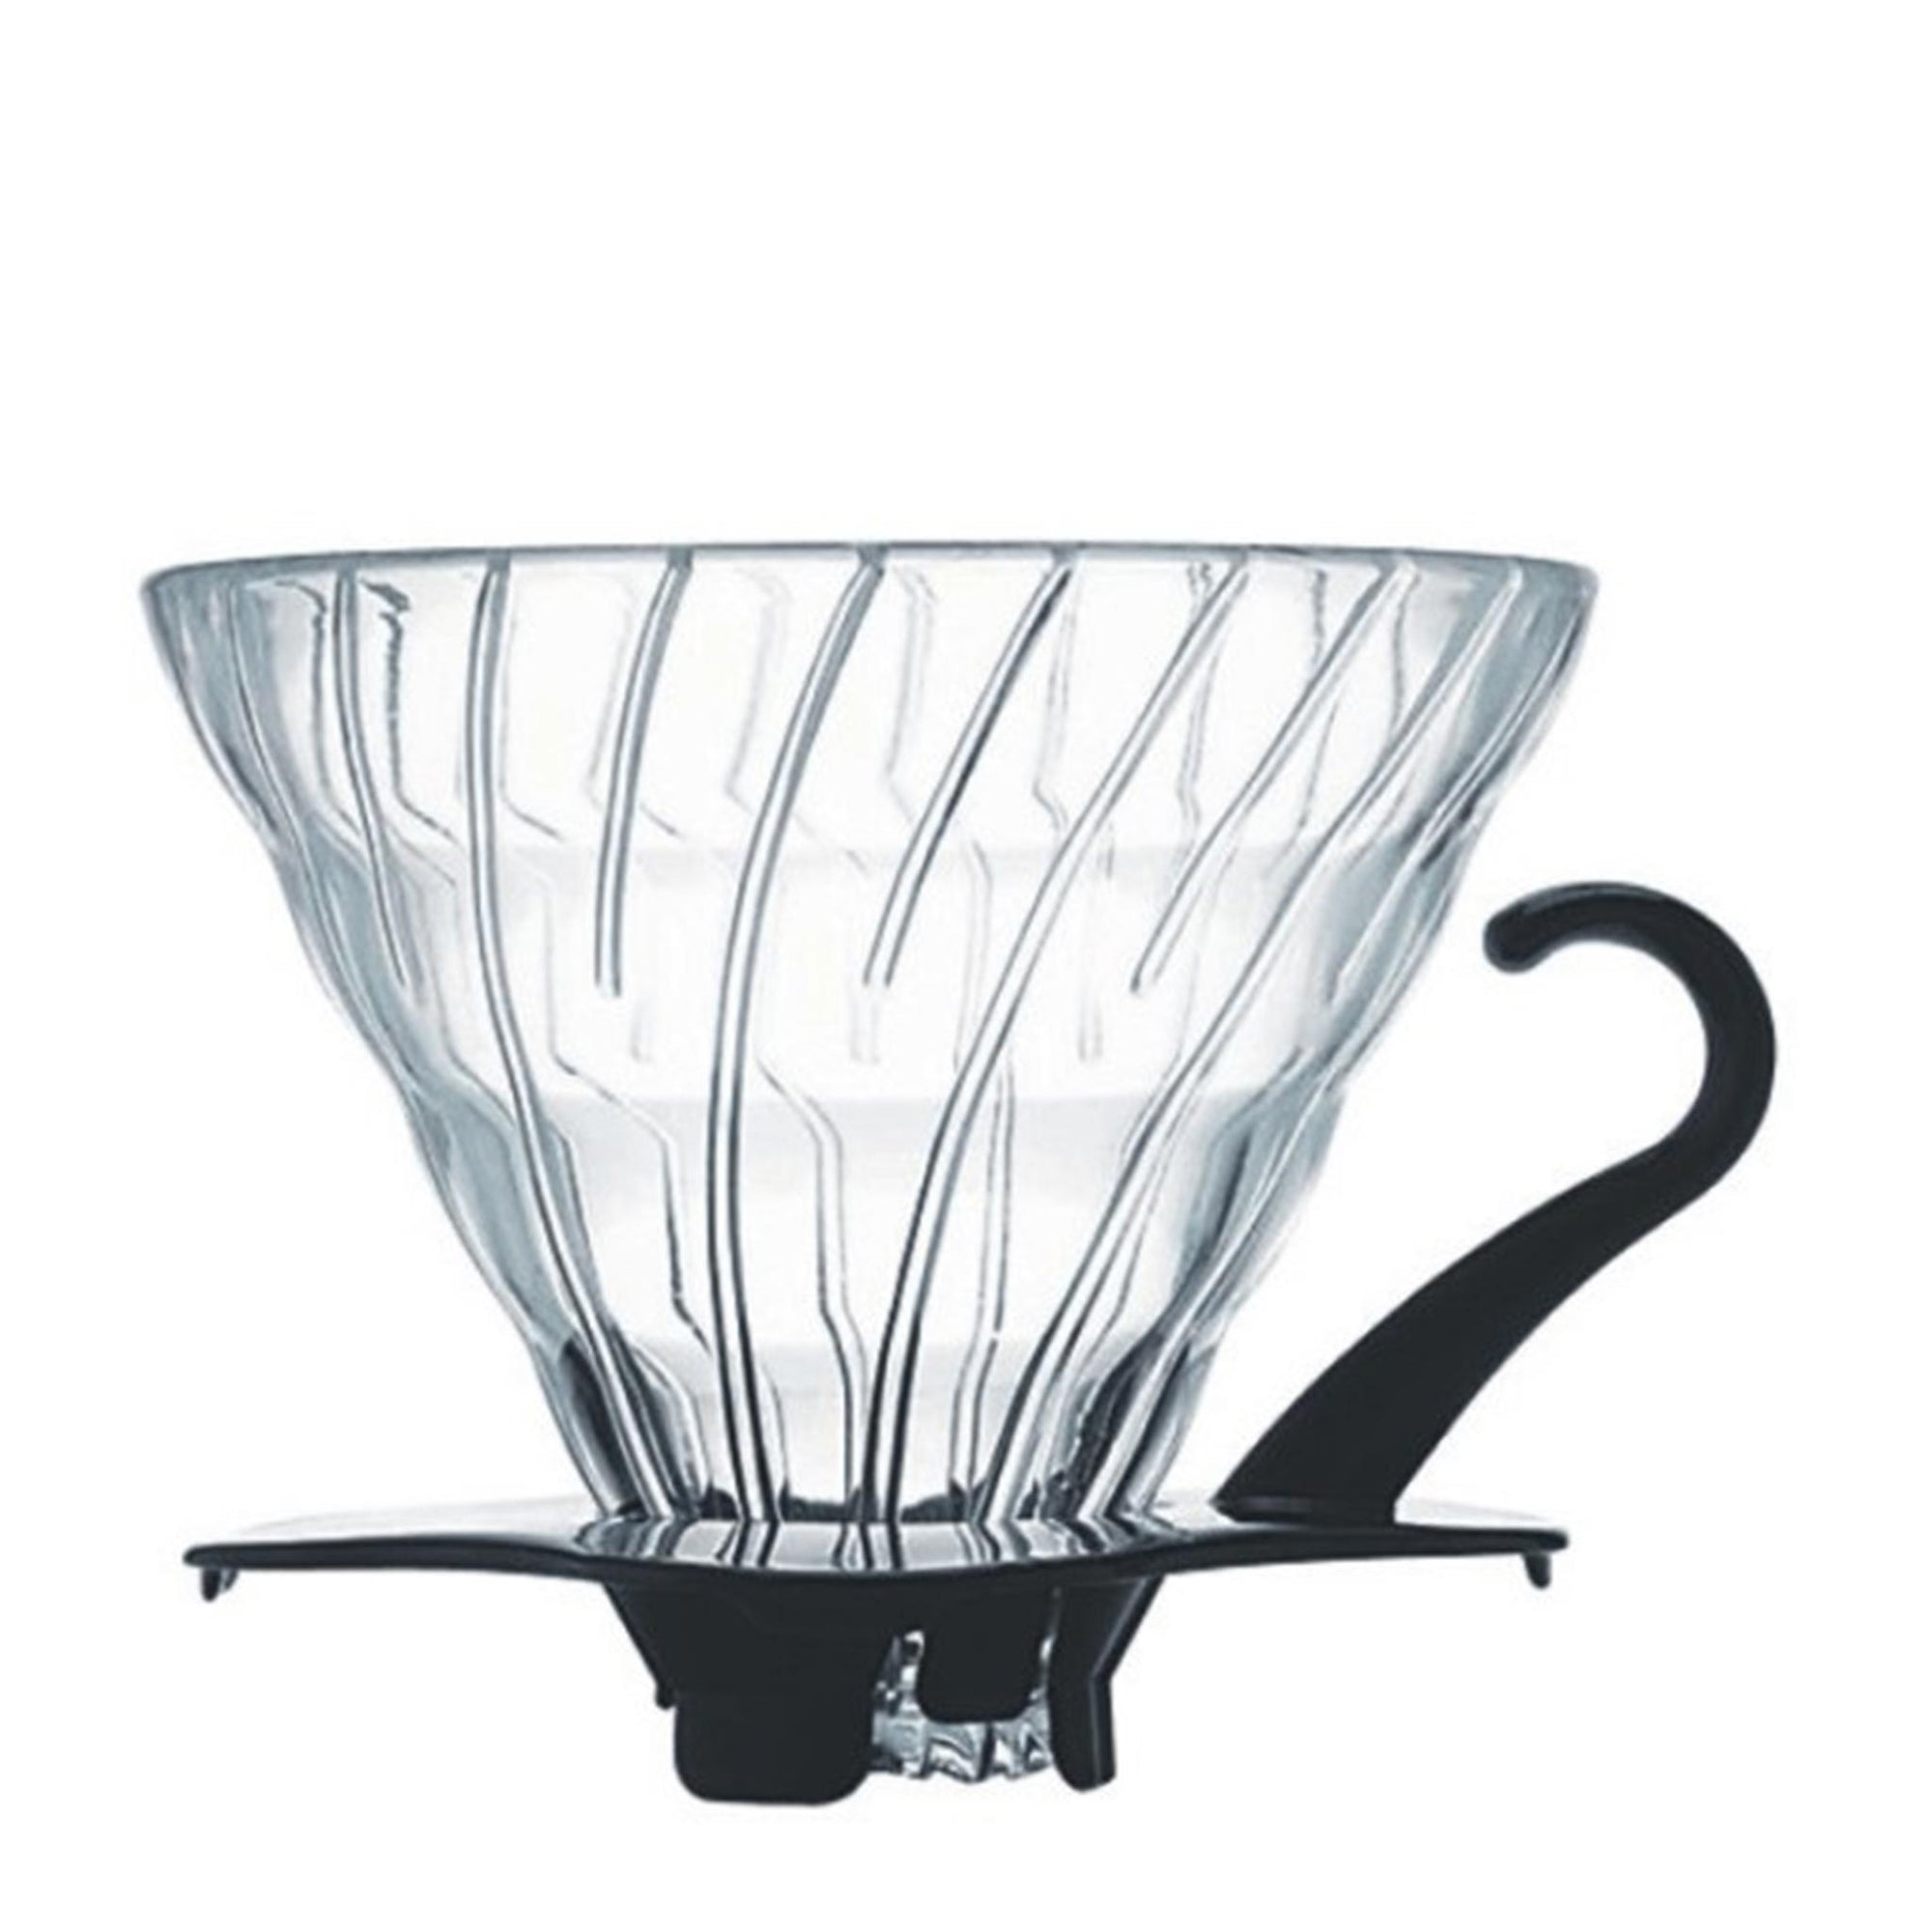 Hario V60 02 Glass Coffee Dripper - BLACK HEN Rösthandwerk